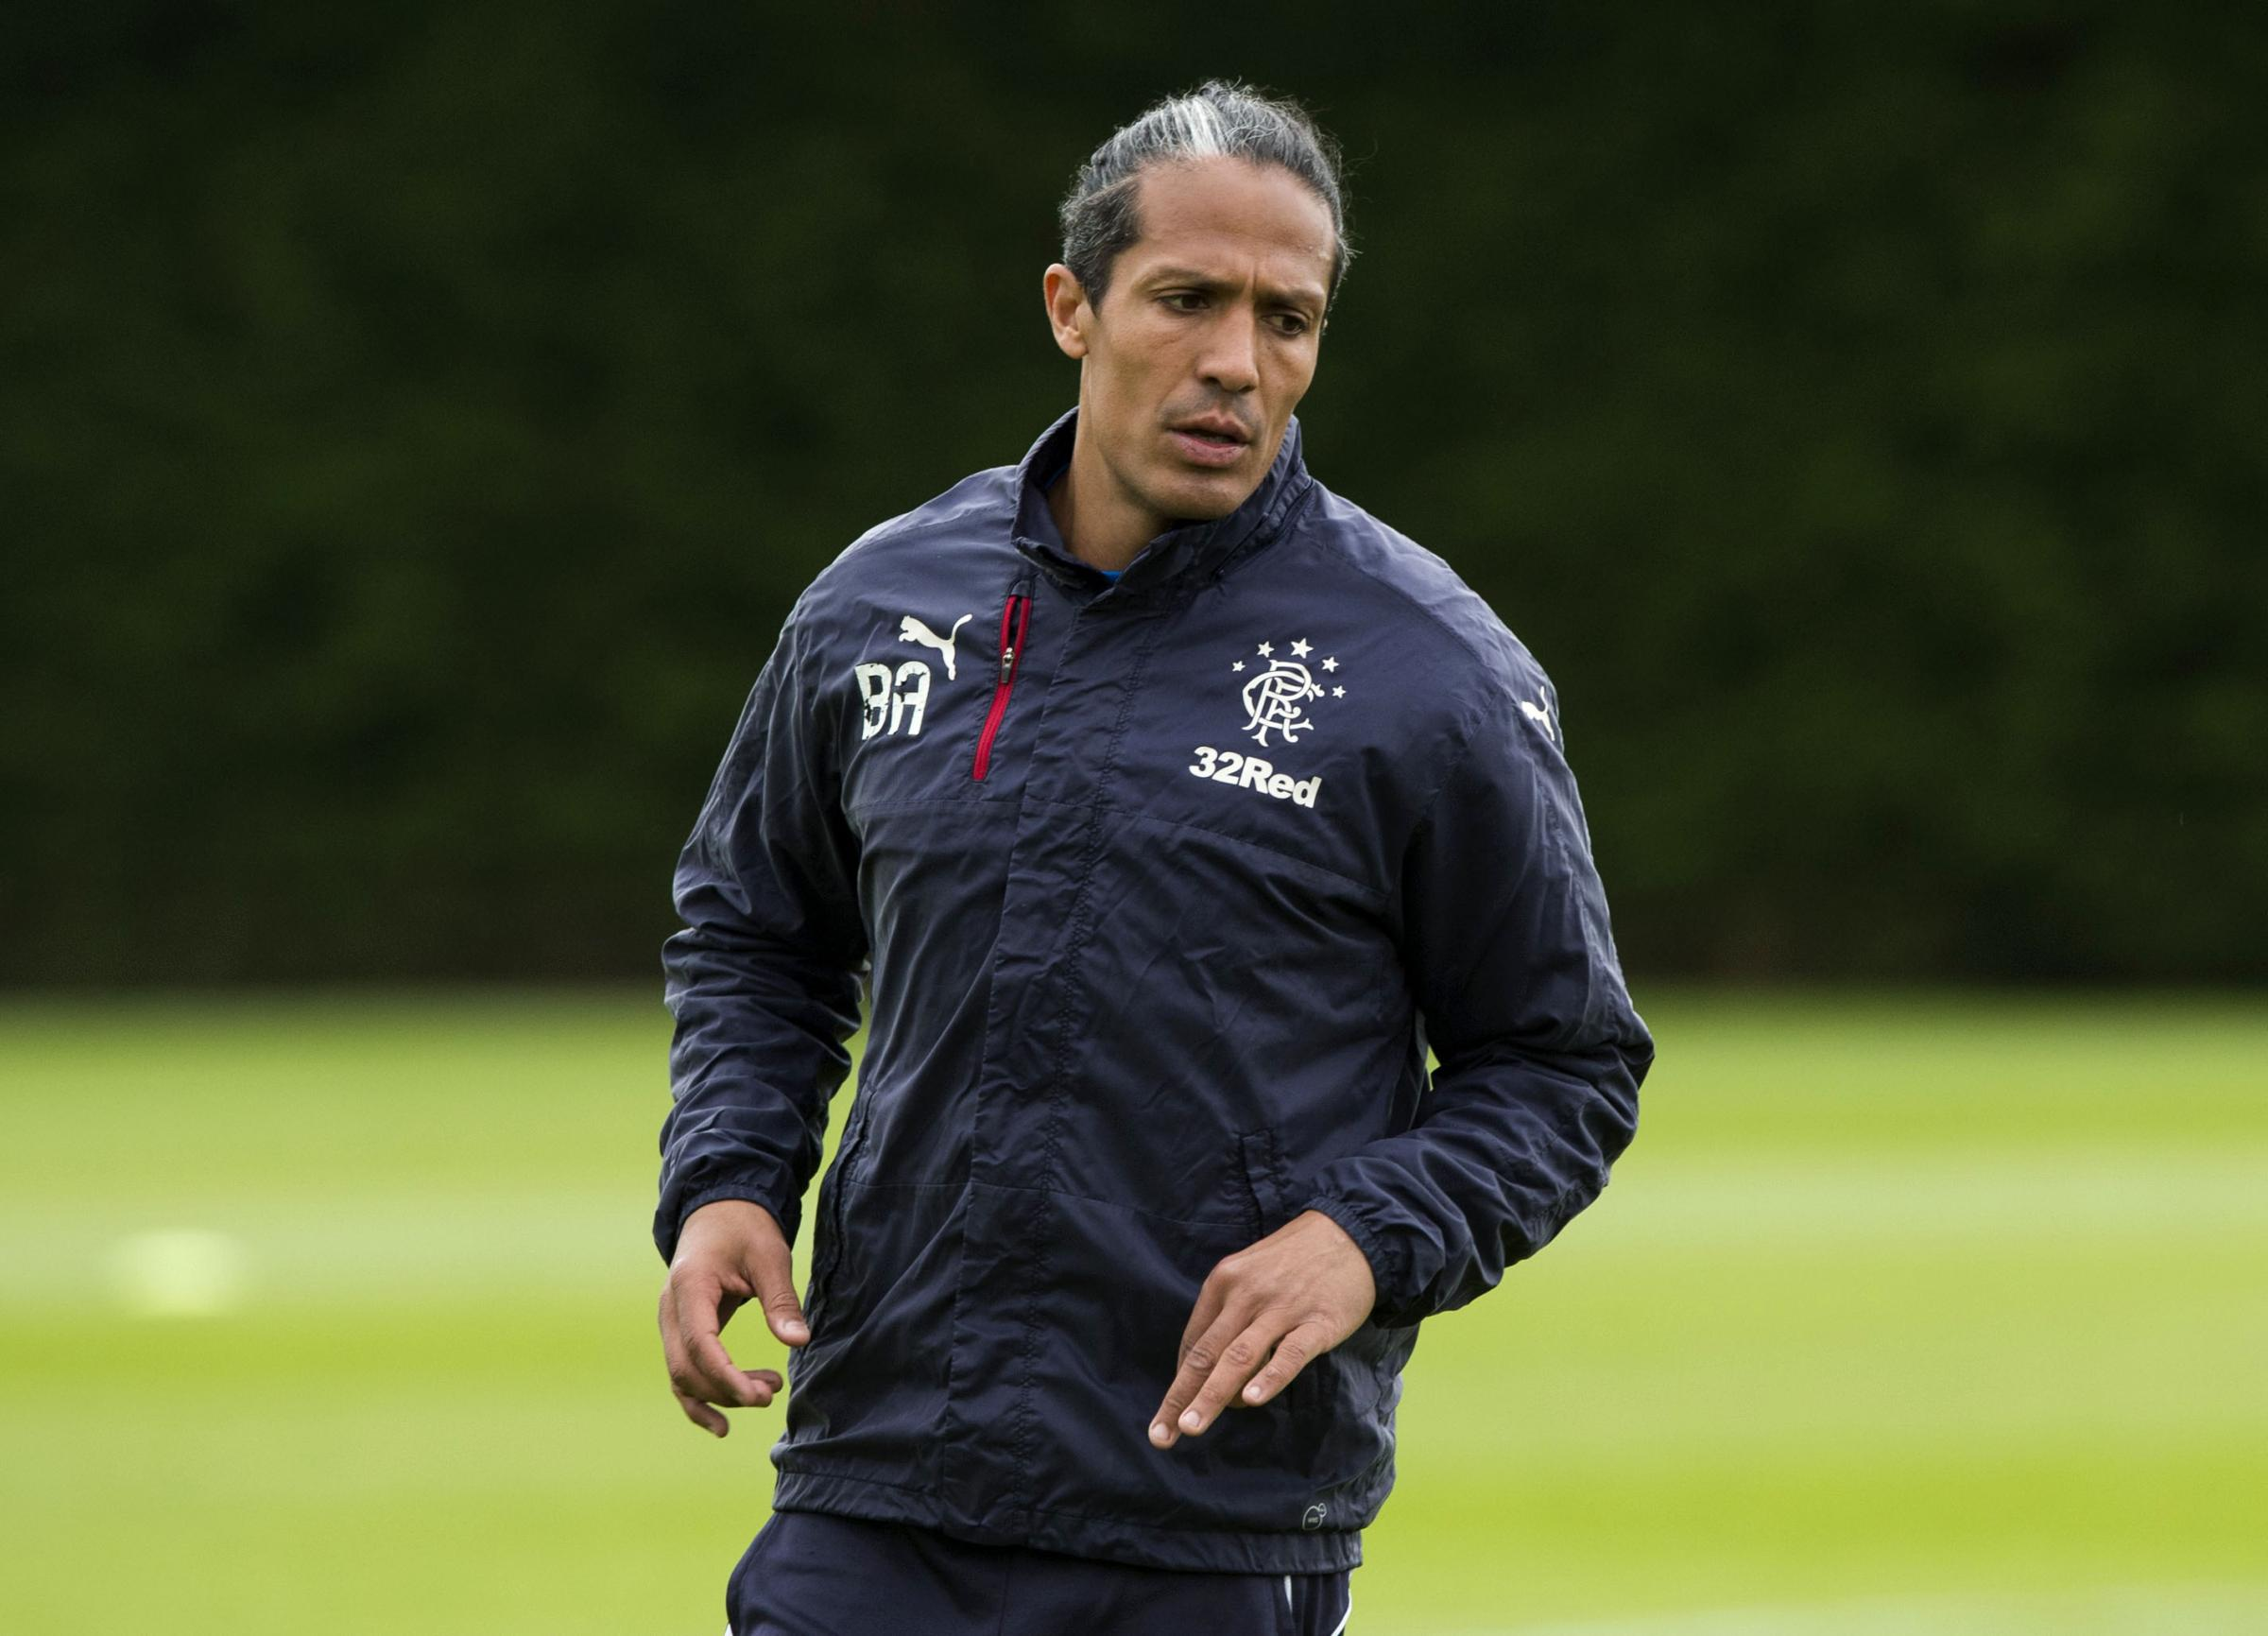 Bruno Alves training in Glasgow during his time with Rangers last season.